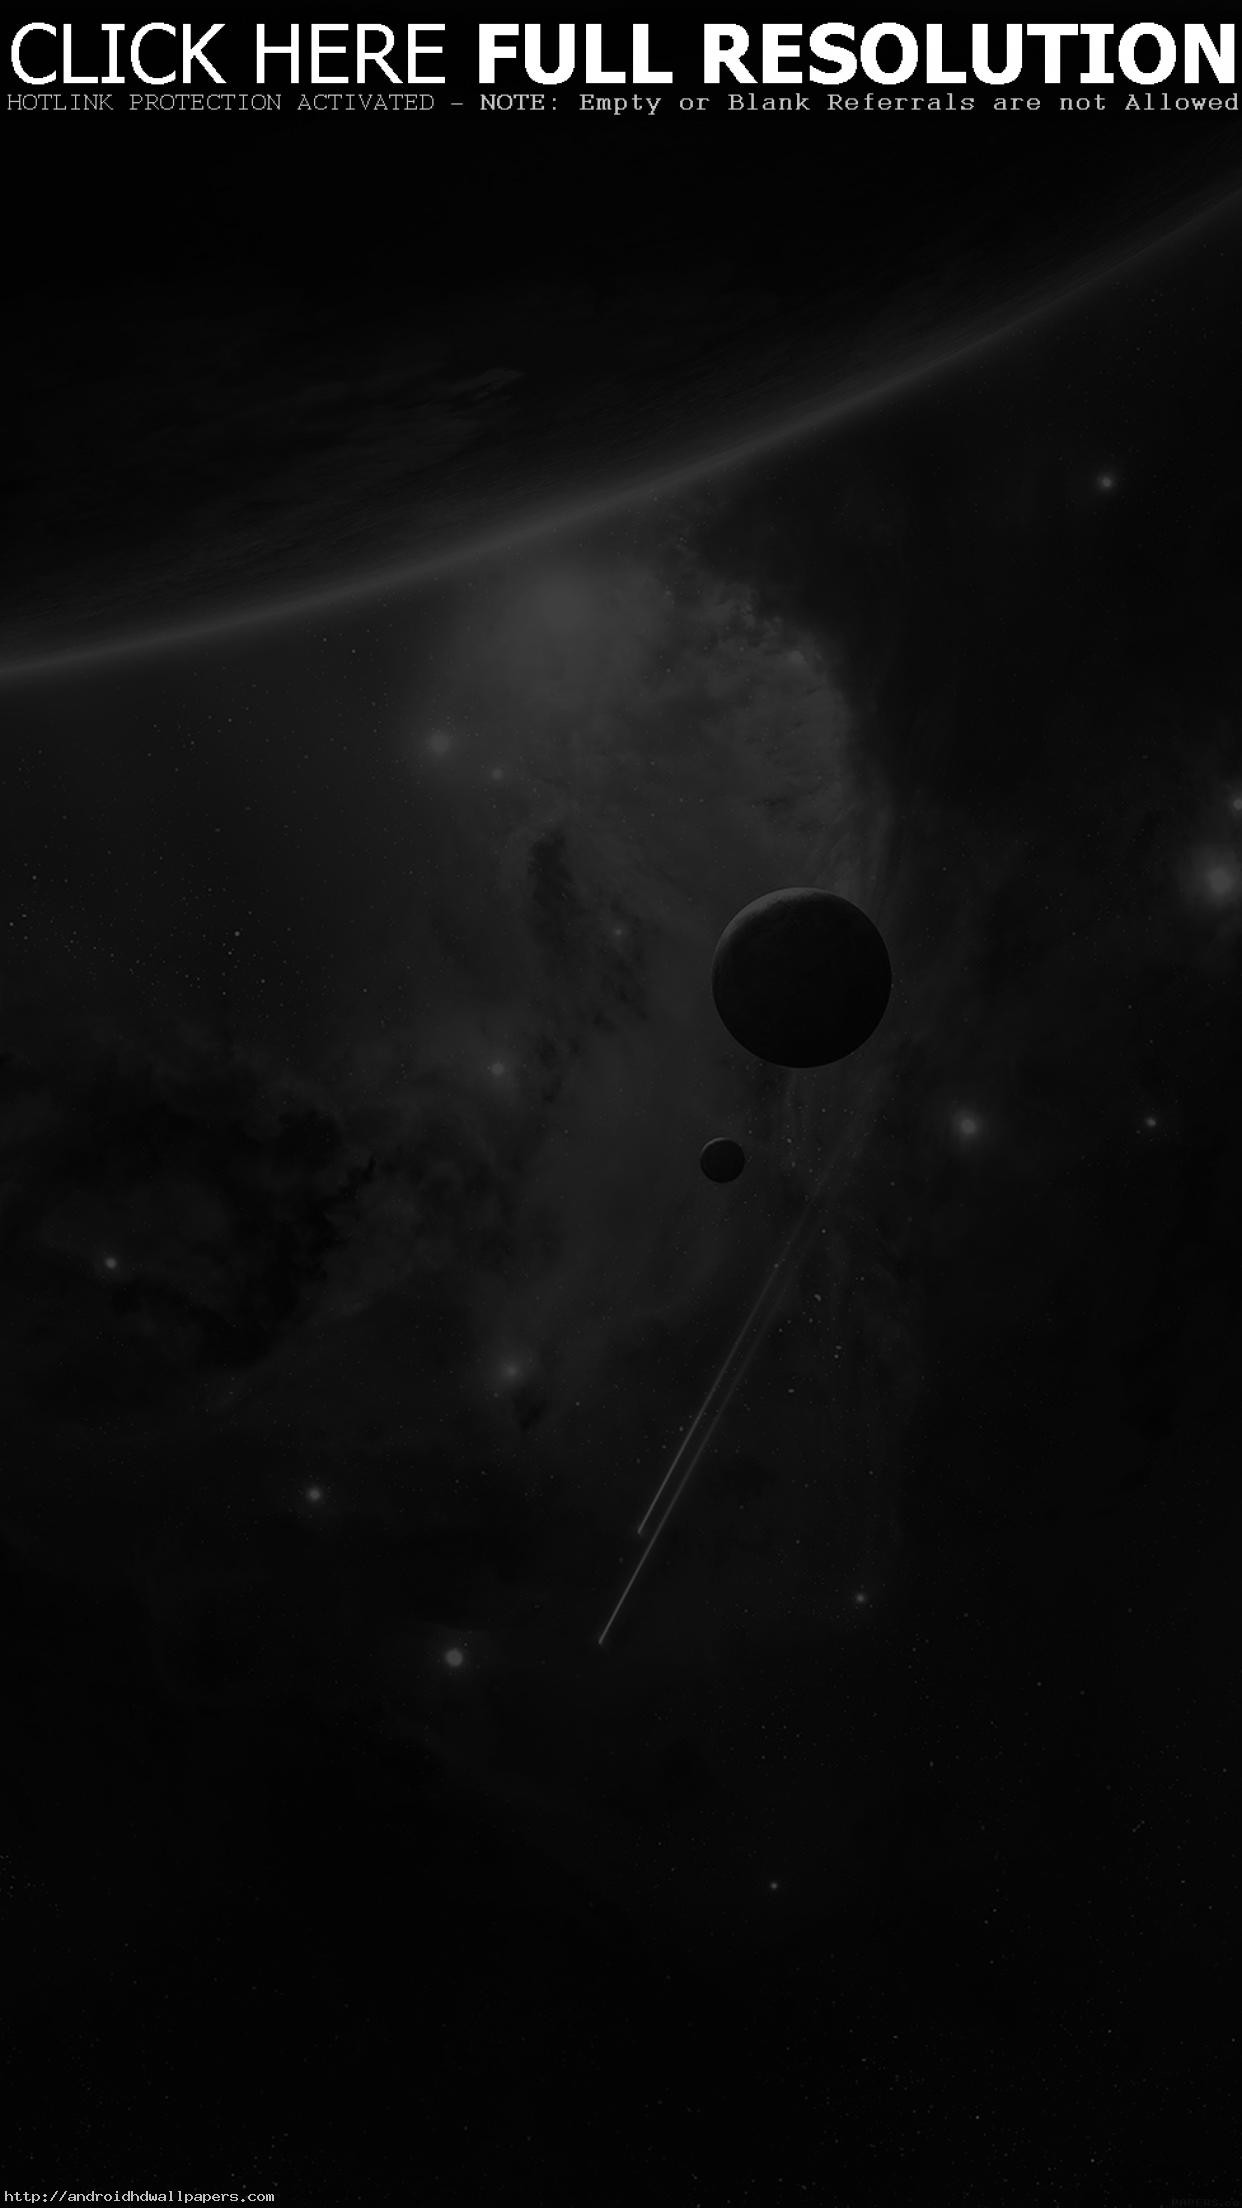 Planets Space Abstract Dark Art Android wallpaper – Android HD wallpapers